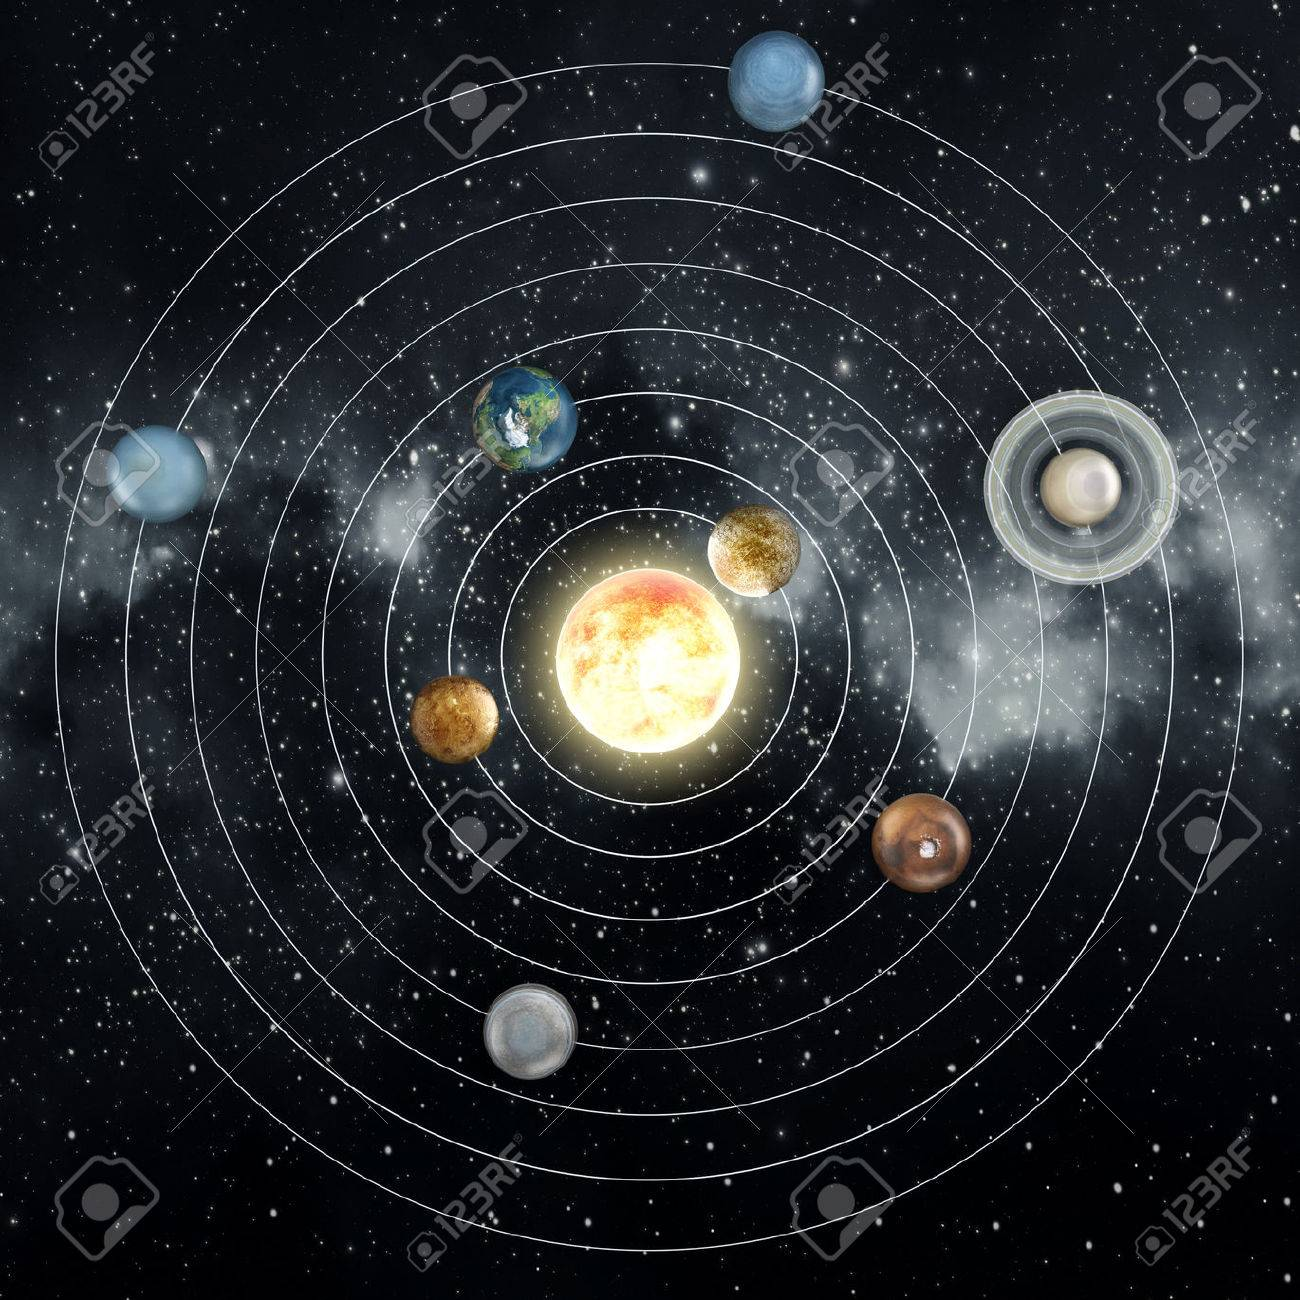 Solar system diagram in the space. Stock Photo - 36751557